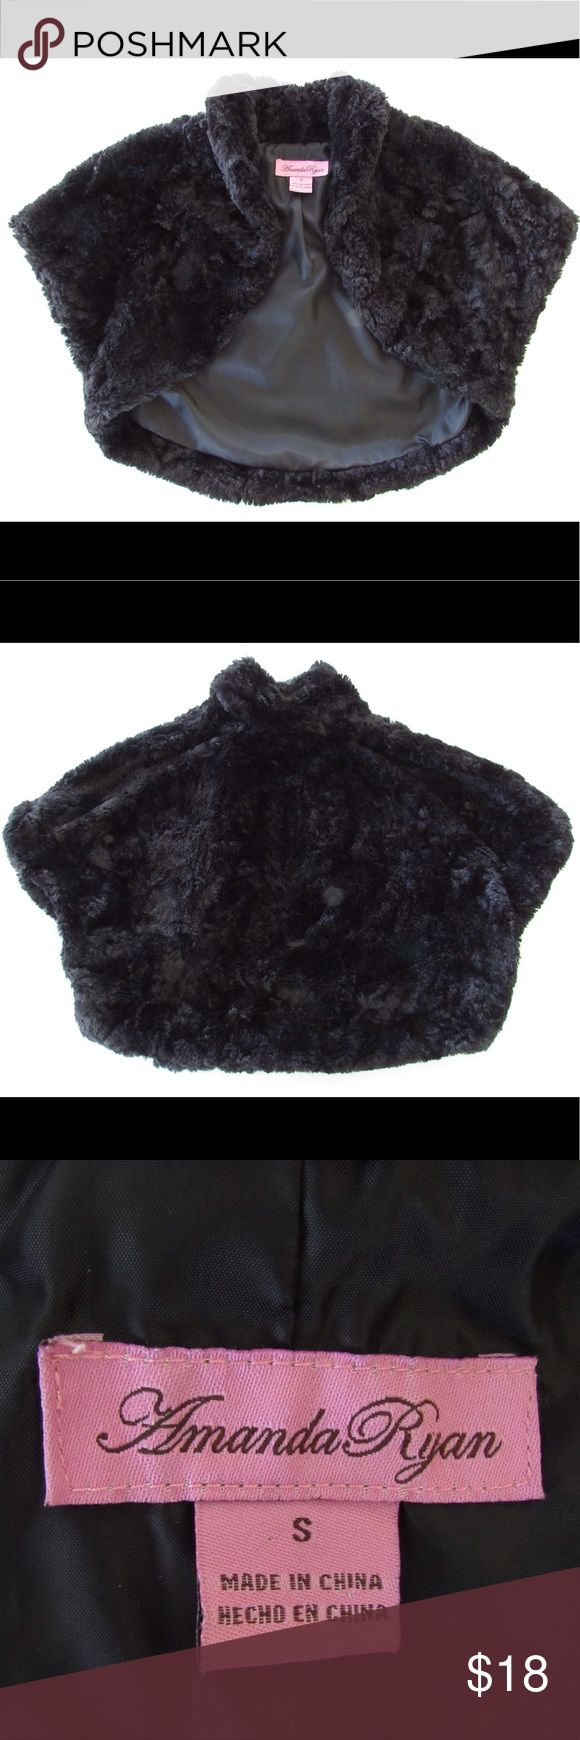 """Amanda Ryan faux fur bolero jacket, evening wrap This is a sweet little bolero jacket by Amanda Ryan, in size small.  It would look so cute over a strapless or sleeveless dress for evening or parties!  It is black faux fur with a nappy texture to imitate Persian Lamb.  Shawl collar with cap sleeves.  Lined in black.  100% Polyester.  This jacket/wrap is NWOT, in excellent condition.  Size is flexible as it is open in front. Measurements taken flat are bust 16-18"""", length 11"""" in front, 15"""" in…"""